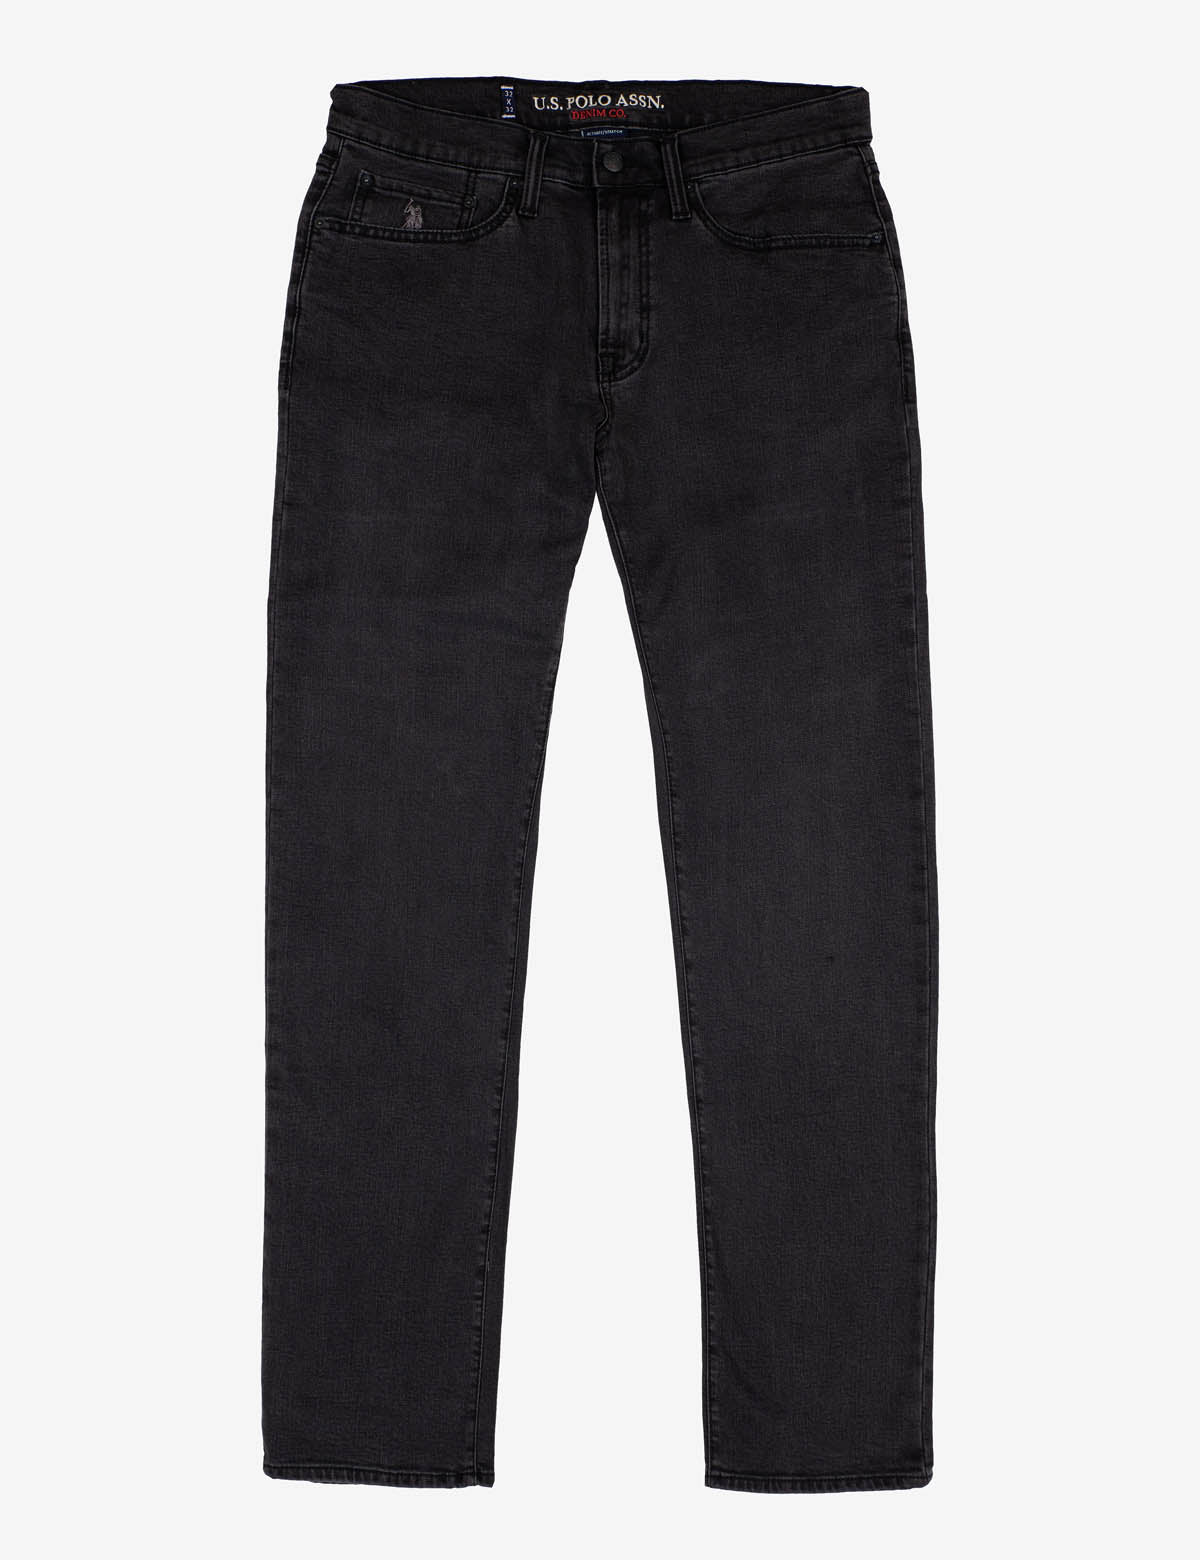 US Polo Association STRAIGHT FIT JEANS